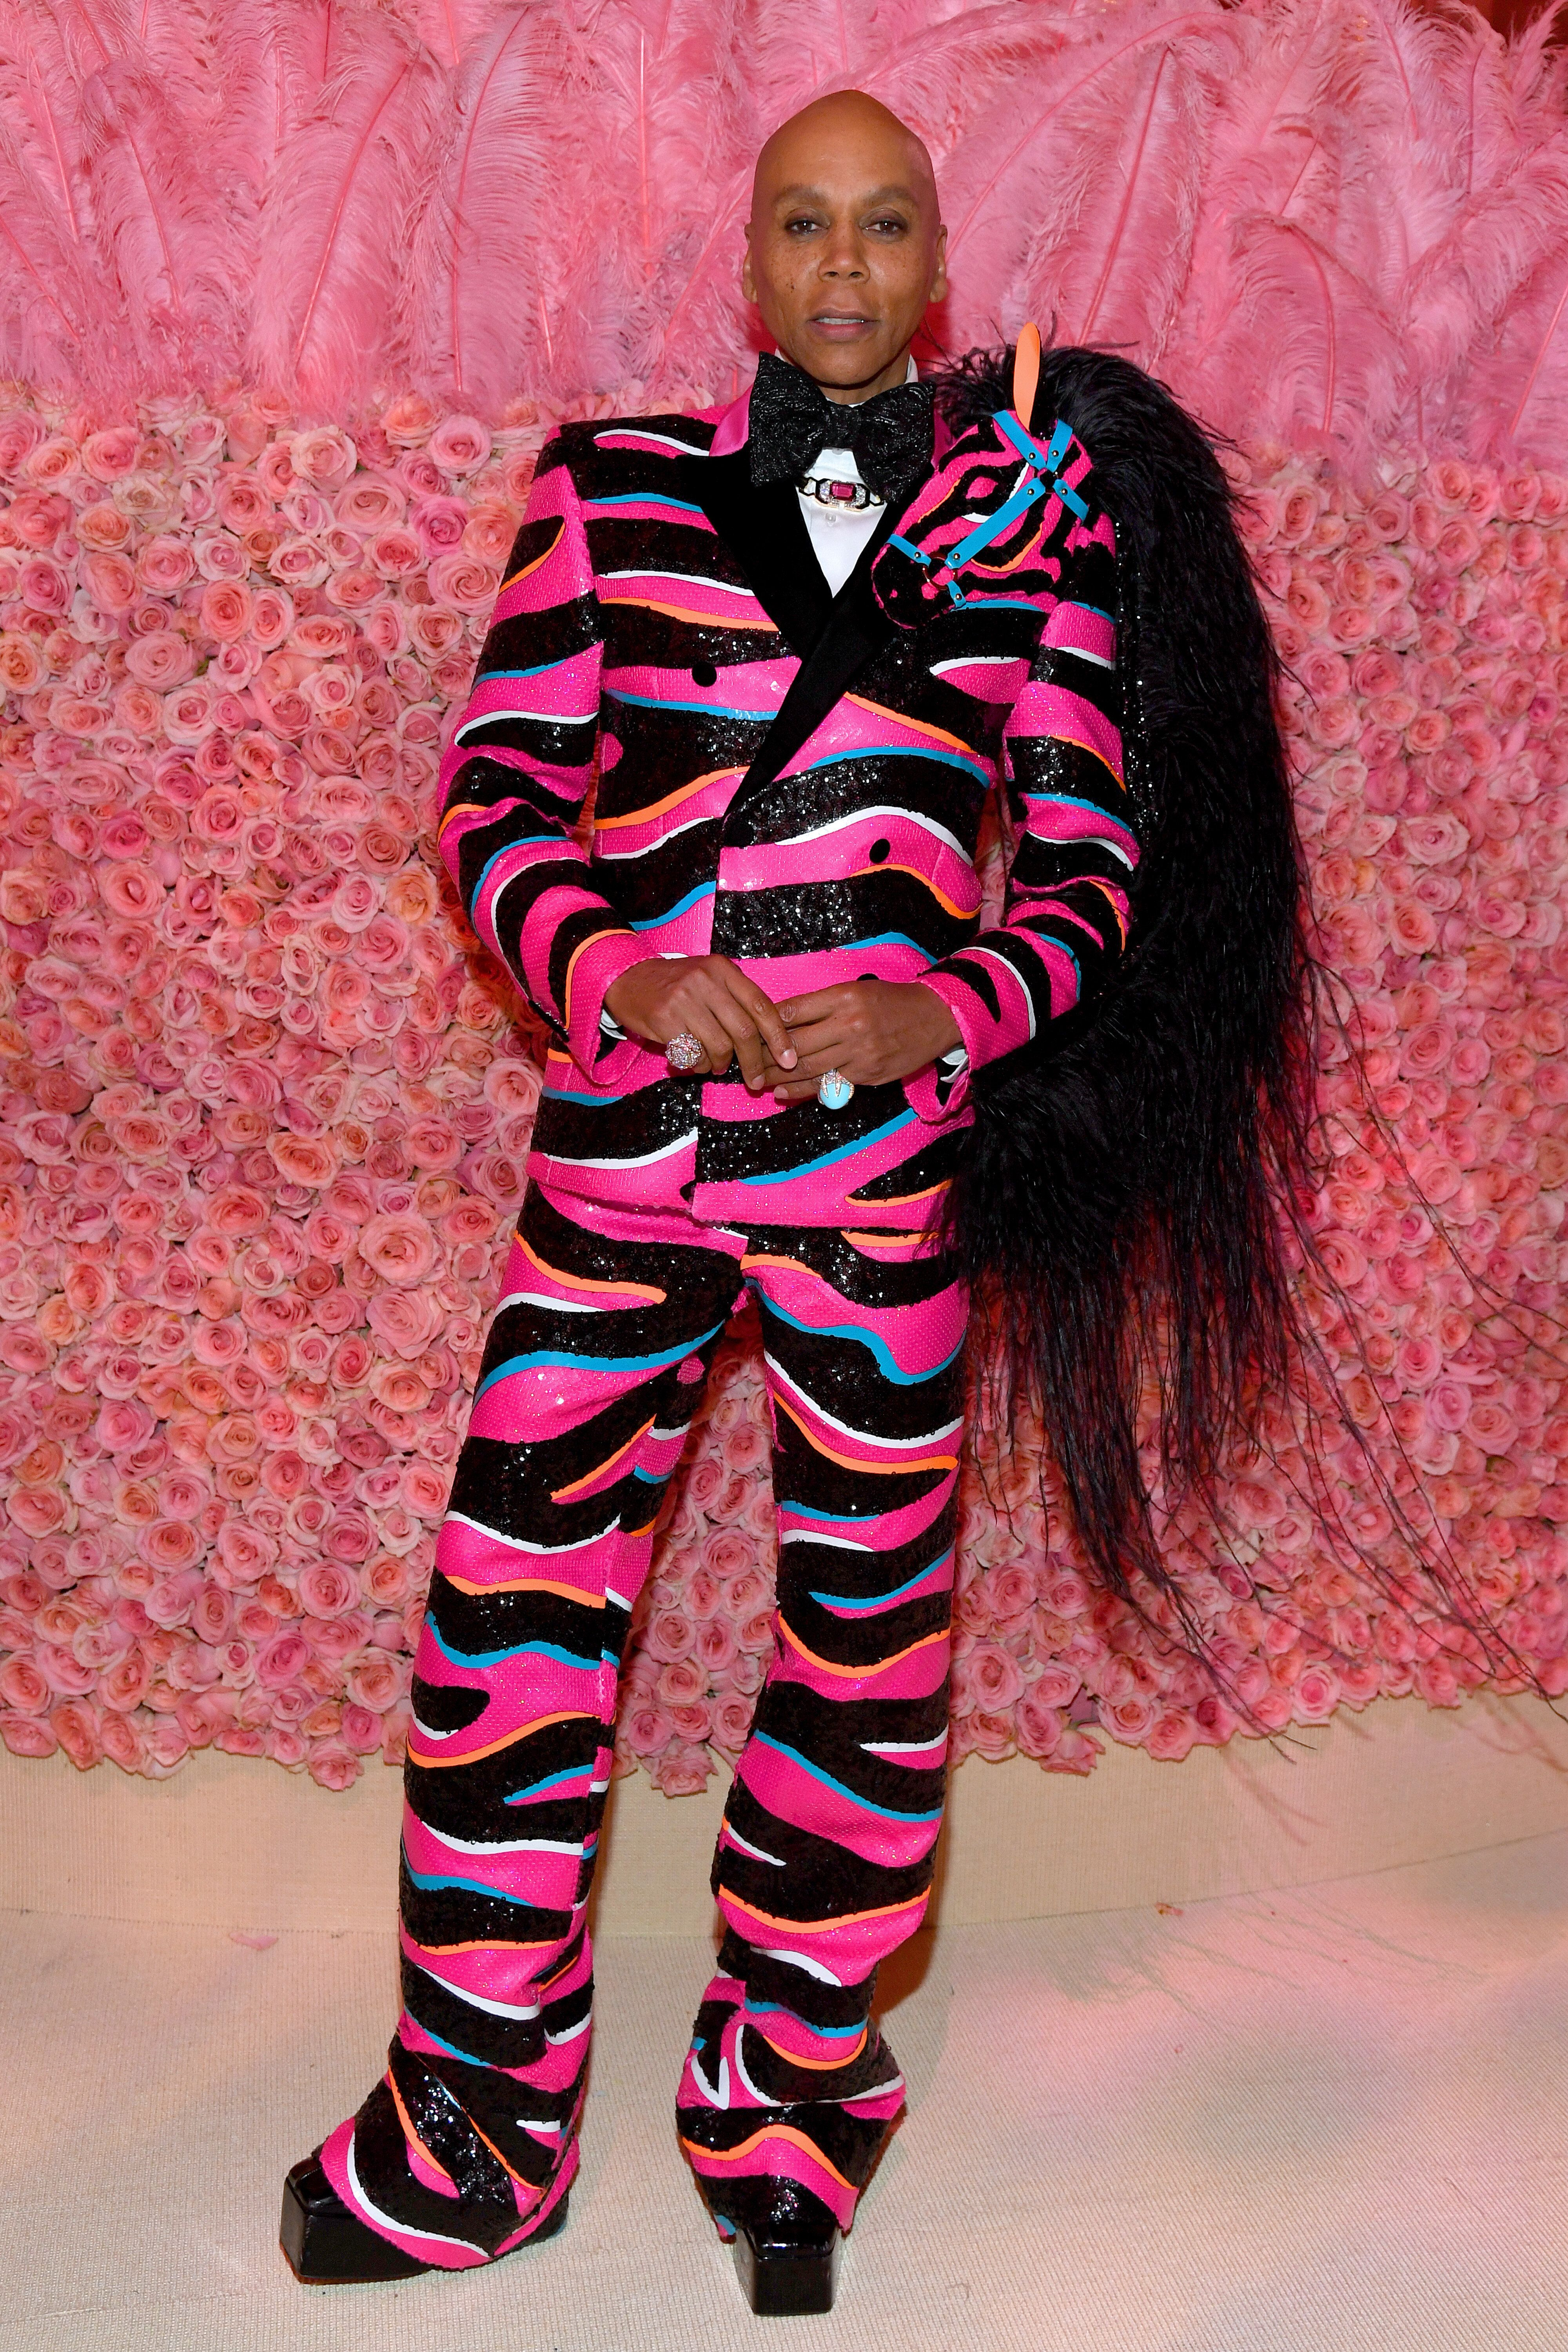 RuPaul attended the 2019 Met Gala in a pink and black sequined suit, designed by